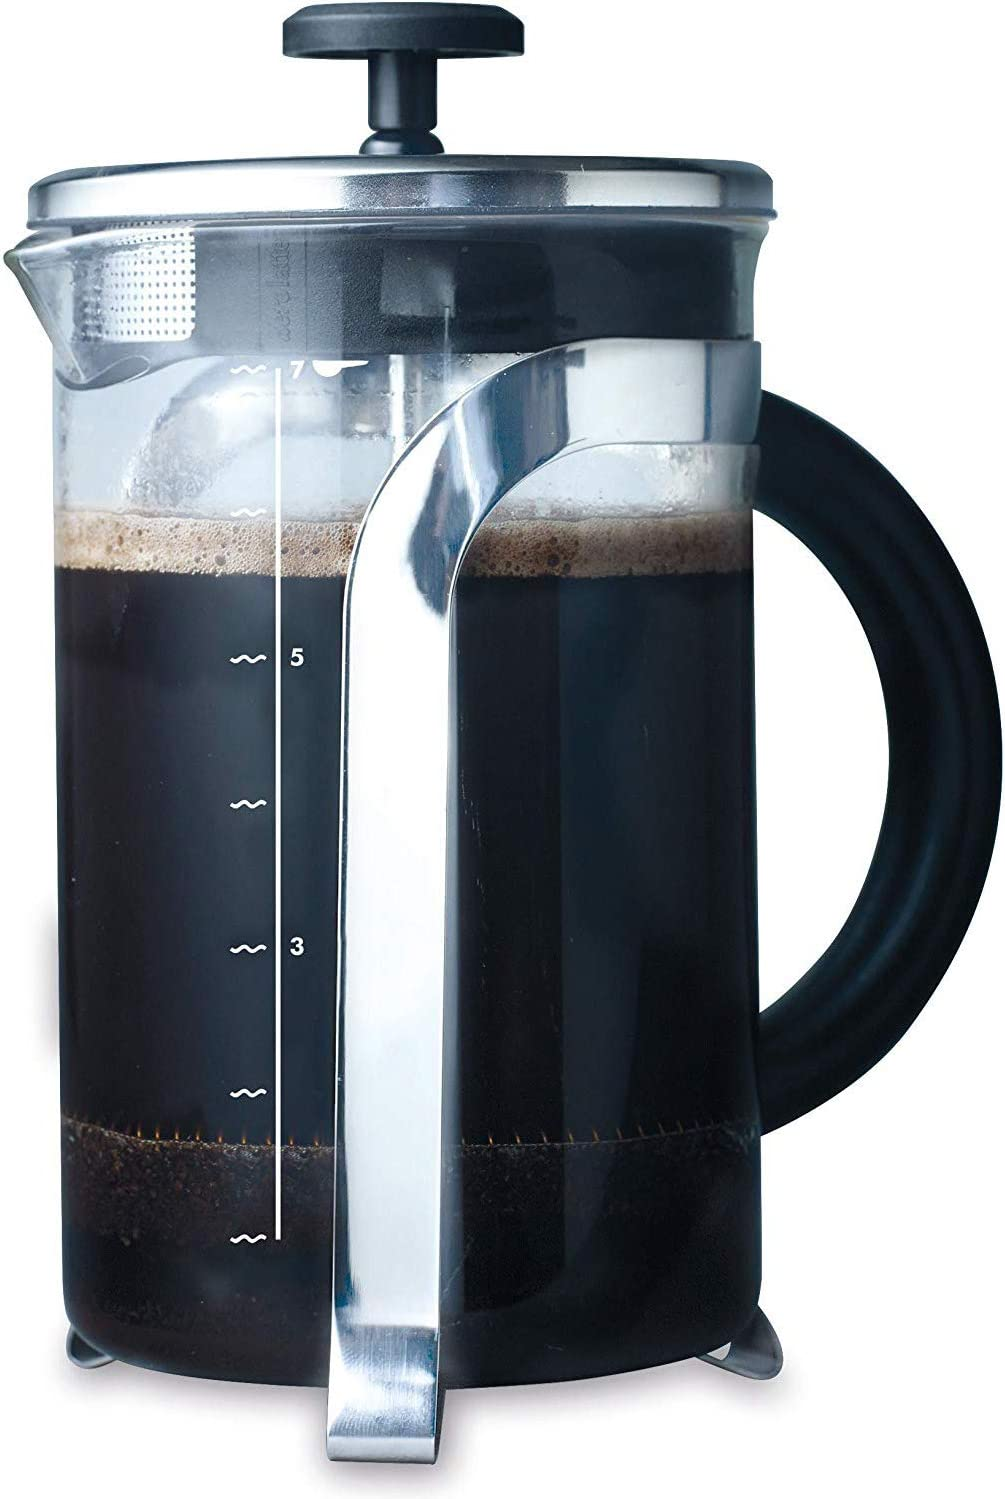 Japan's largest Topics on TV assortment Aerolatte French Press 800ml 7-cup Cafetière